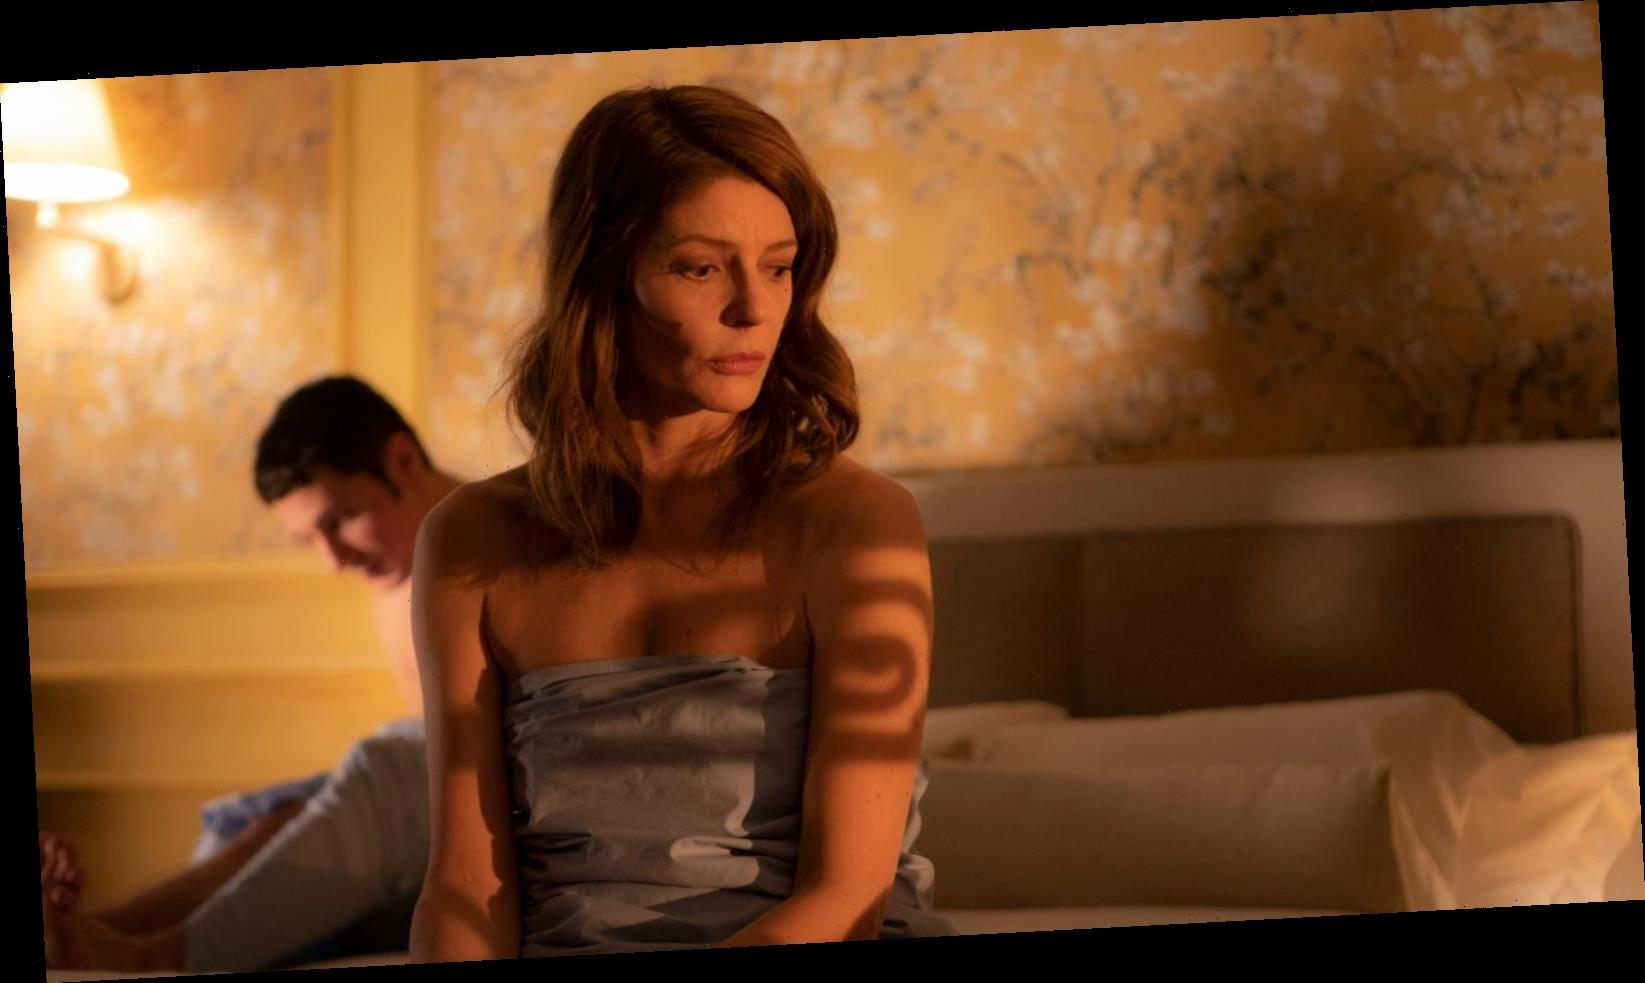 'On a Magical Night' Review: Chiara Mastroianni Leads an Enchanted French Marriage Fantasy